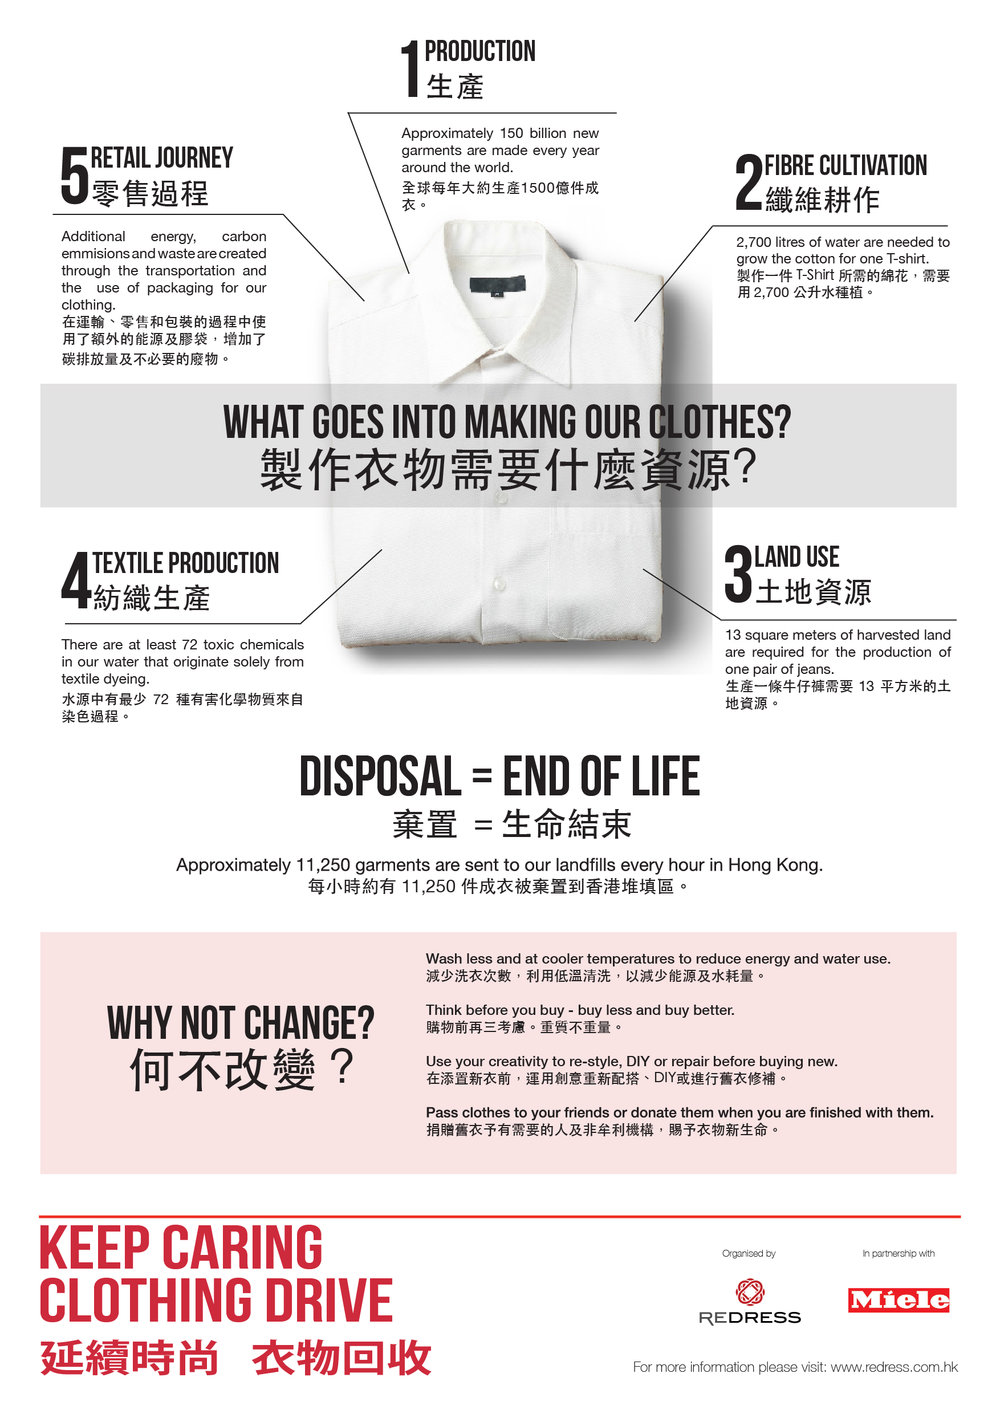 Miele_ClothingDrive_EducationalPoster_Final20150828-01.jpg